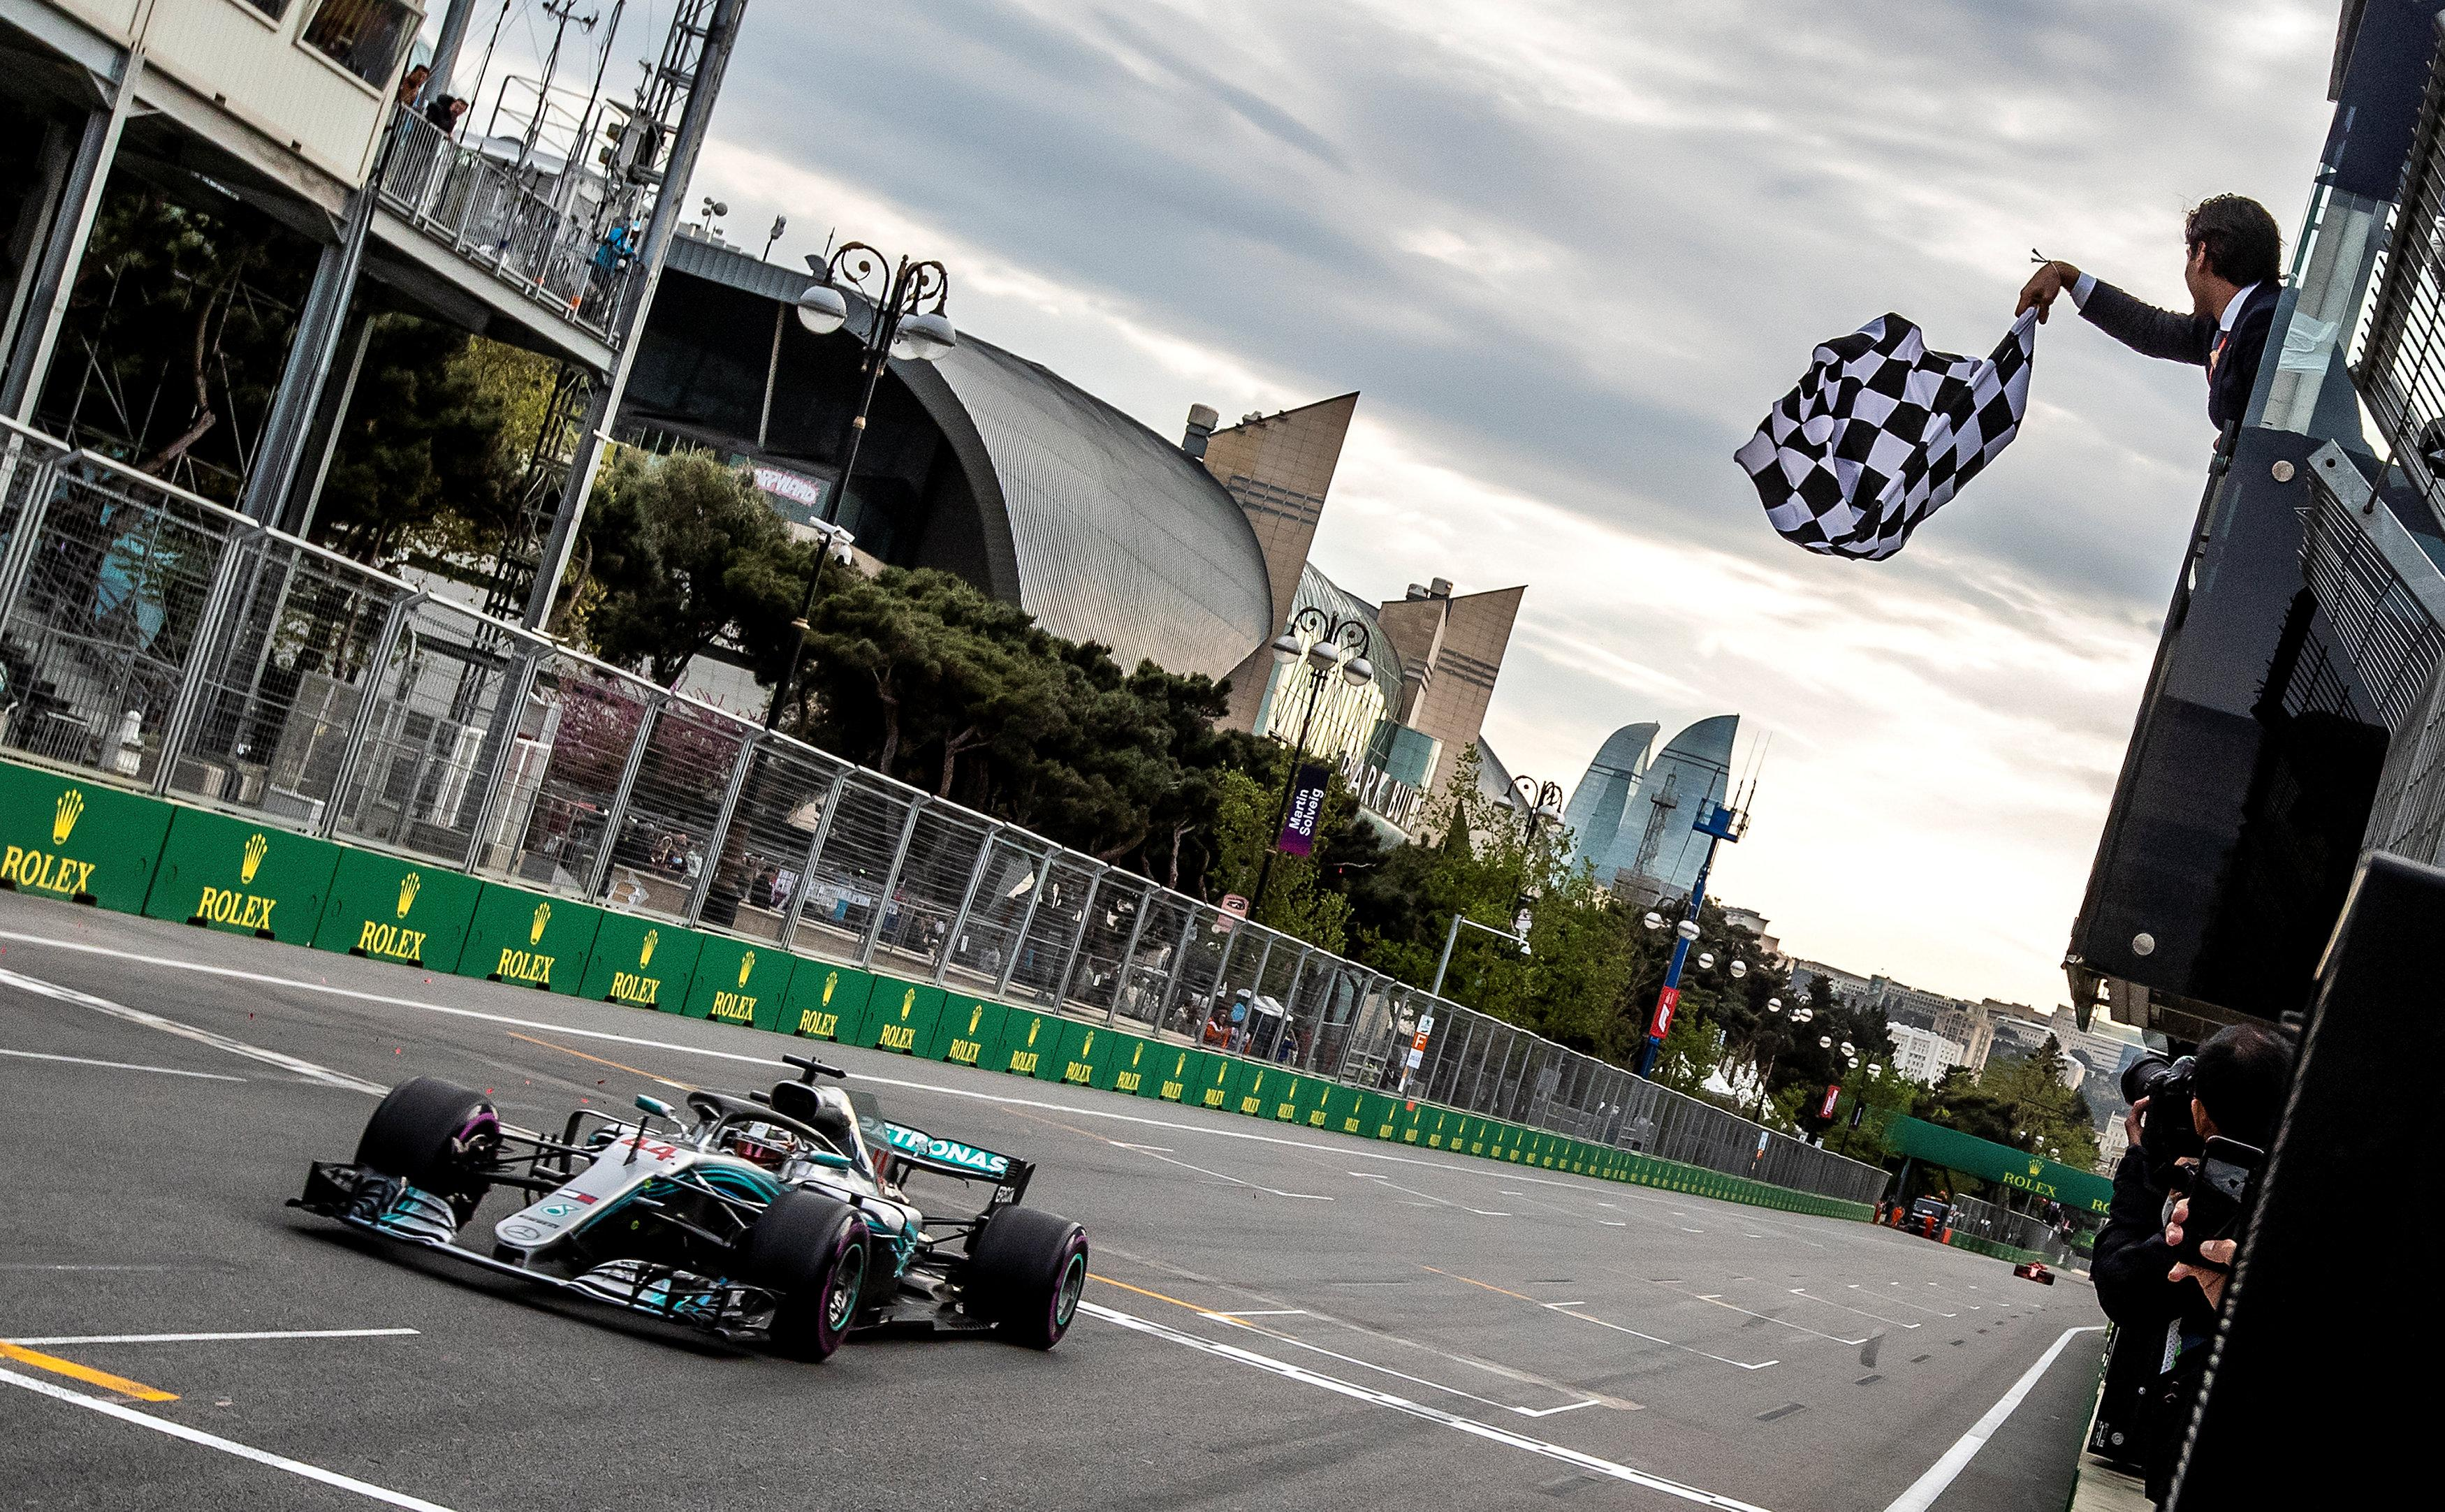 Lewis Hamilton secures his first win of the season in Azerbaijan